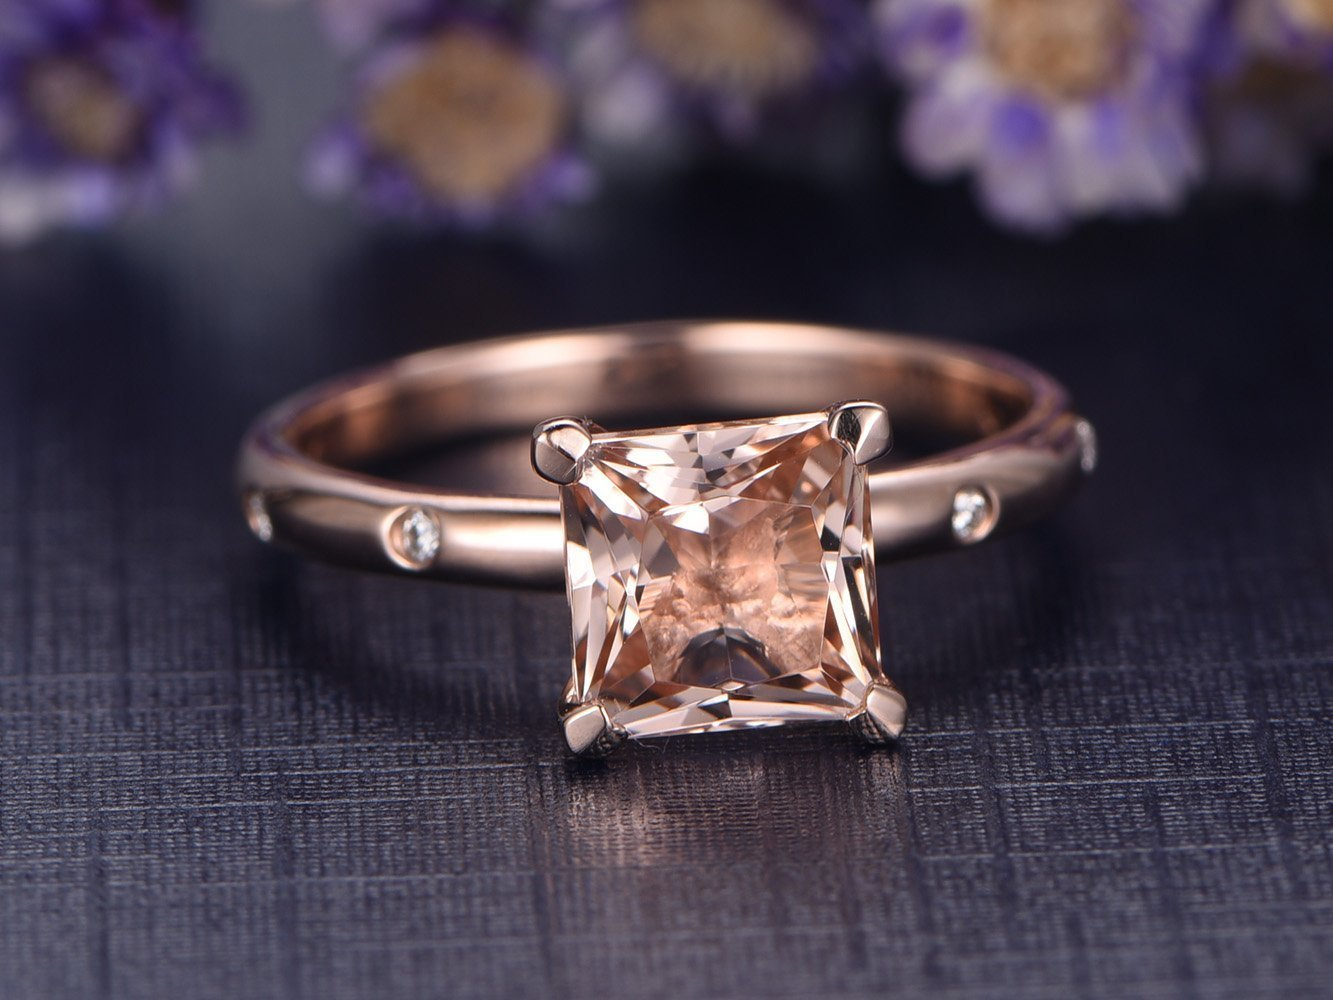 7mm Princess Cut Pink Morganite Engagement Ring 14k Rose Gold Charles & Colvard Moissanite Wedding Band,Gift for Her,Simple Style